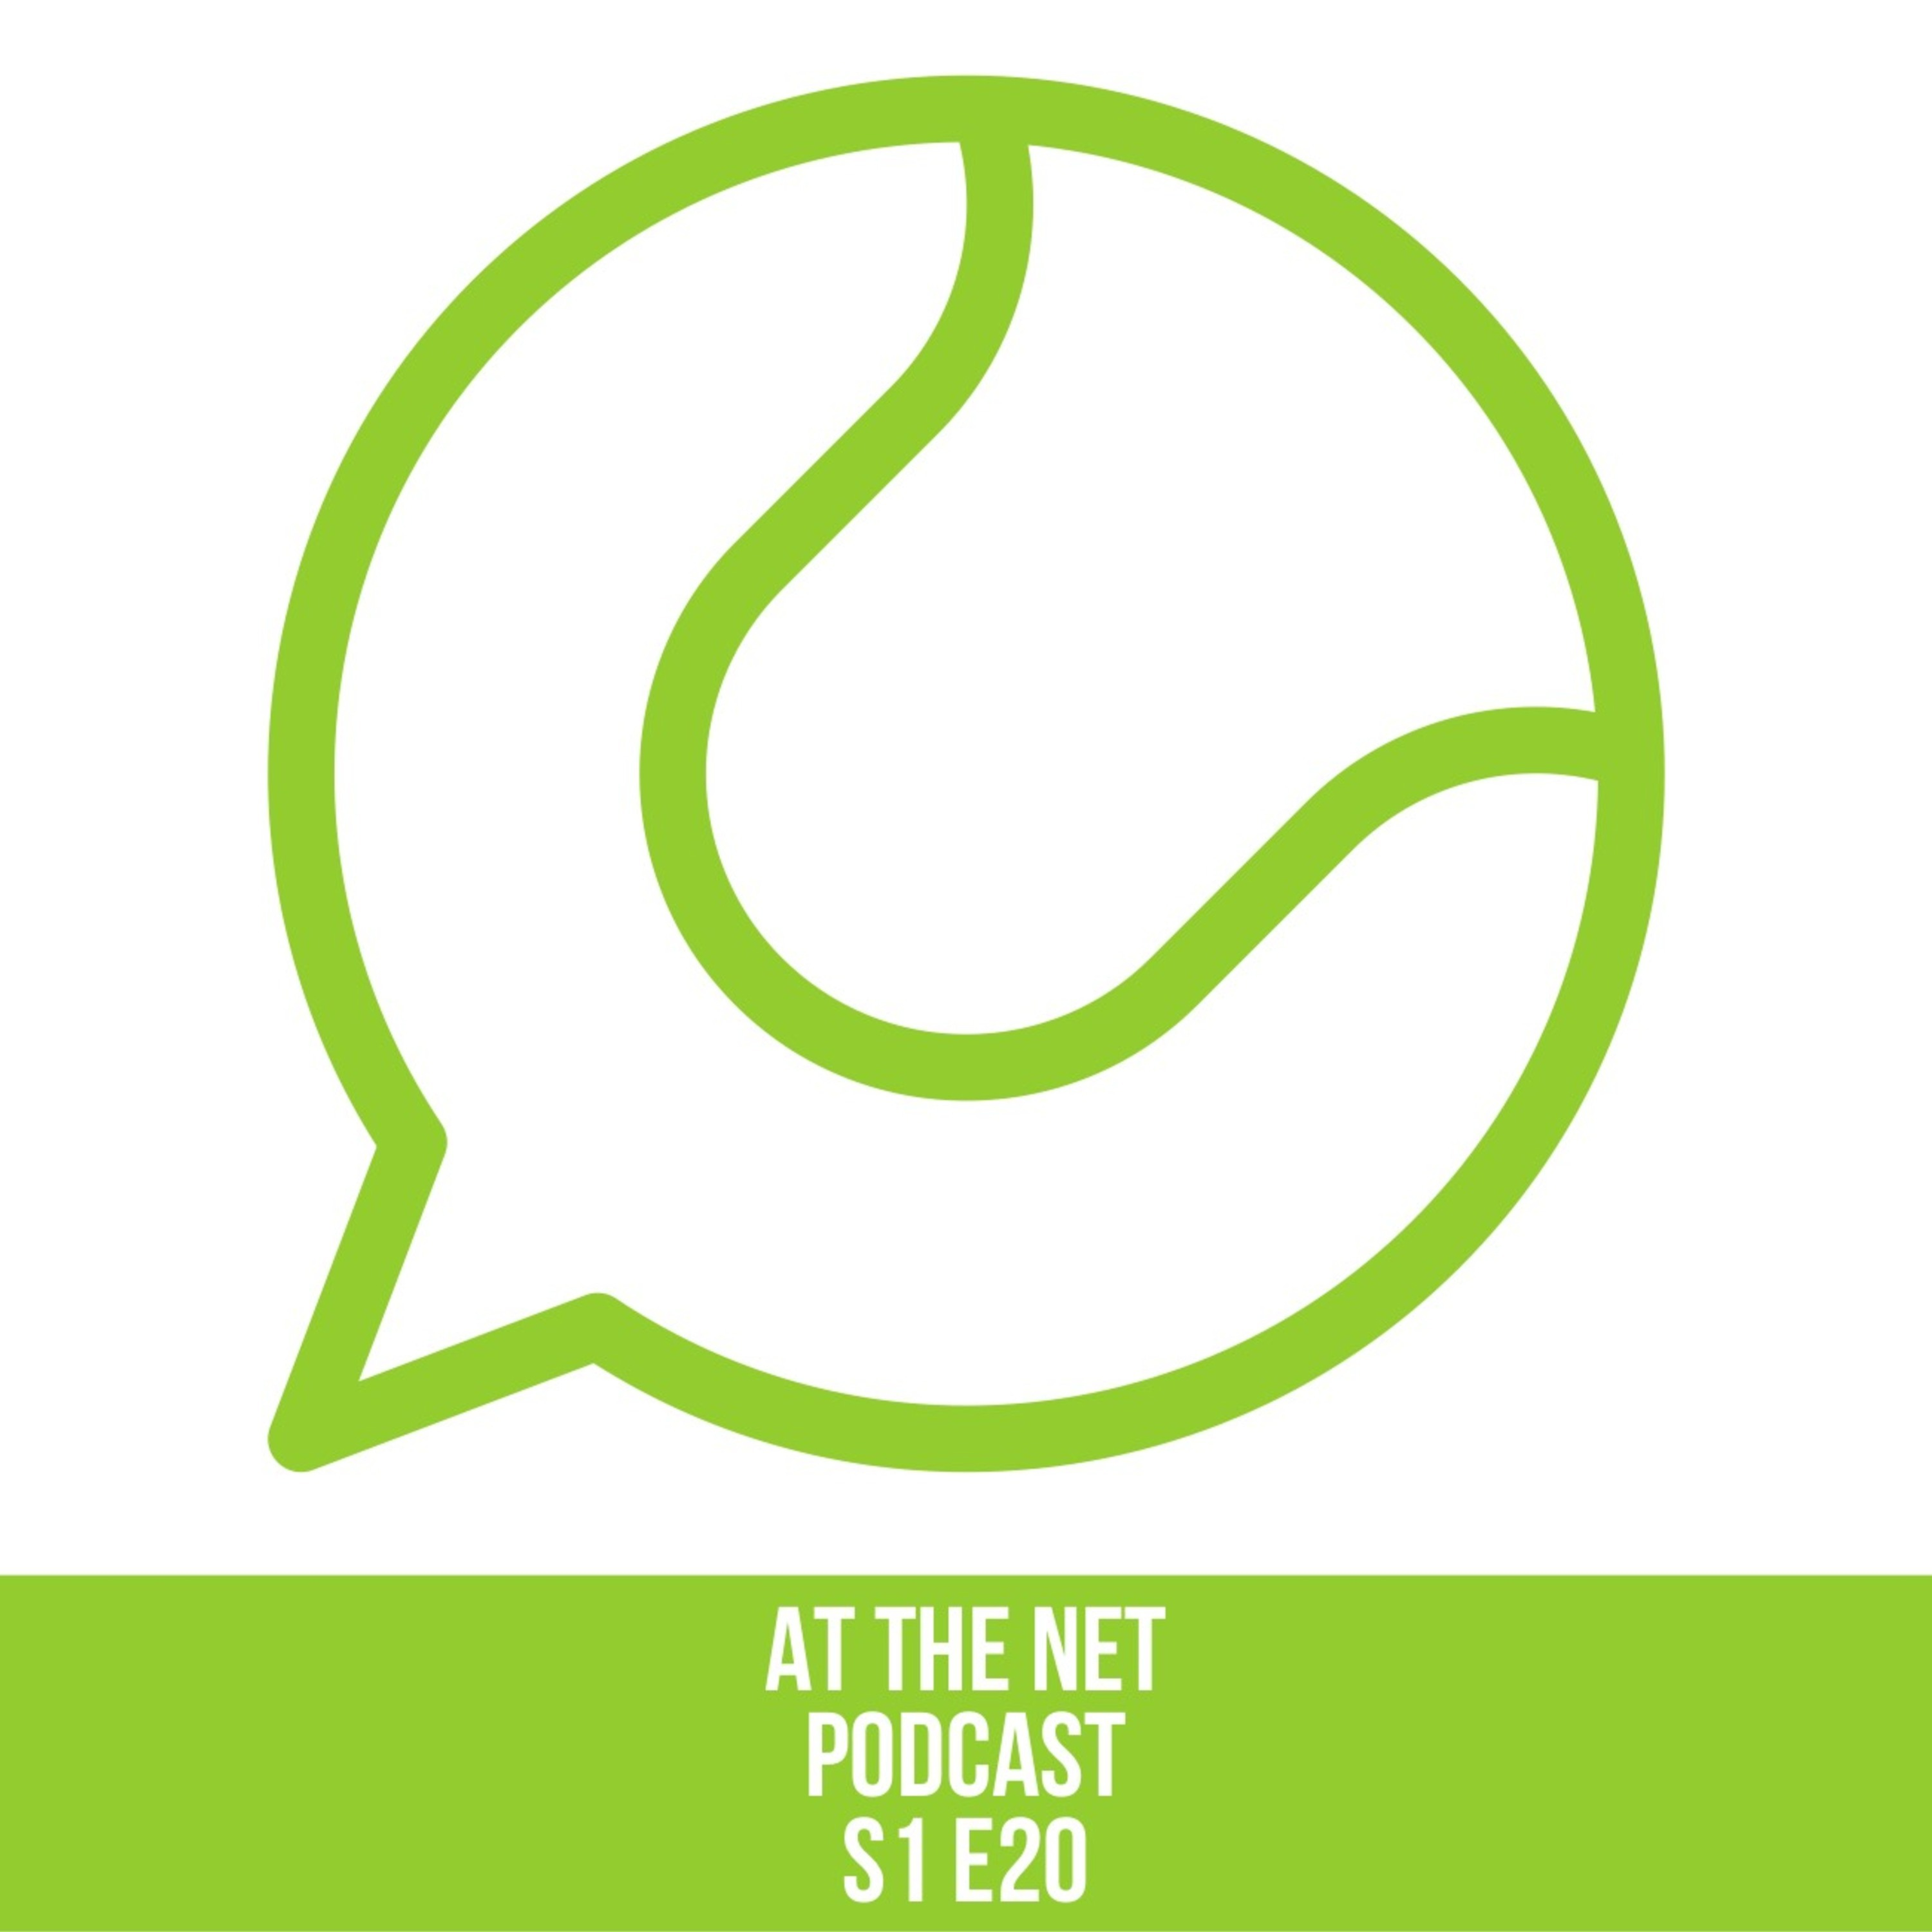 Episode 20: At The Net with Bill Riddle